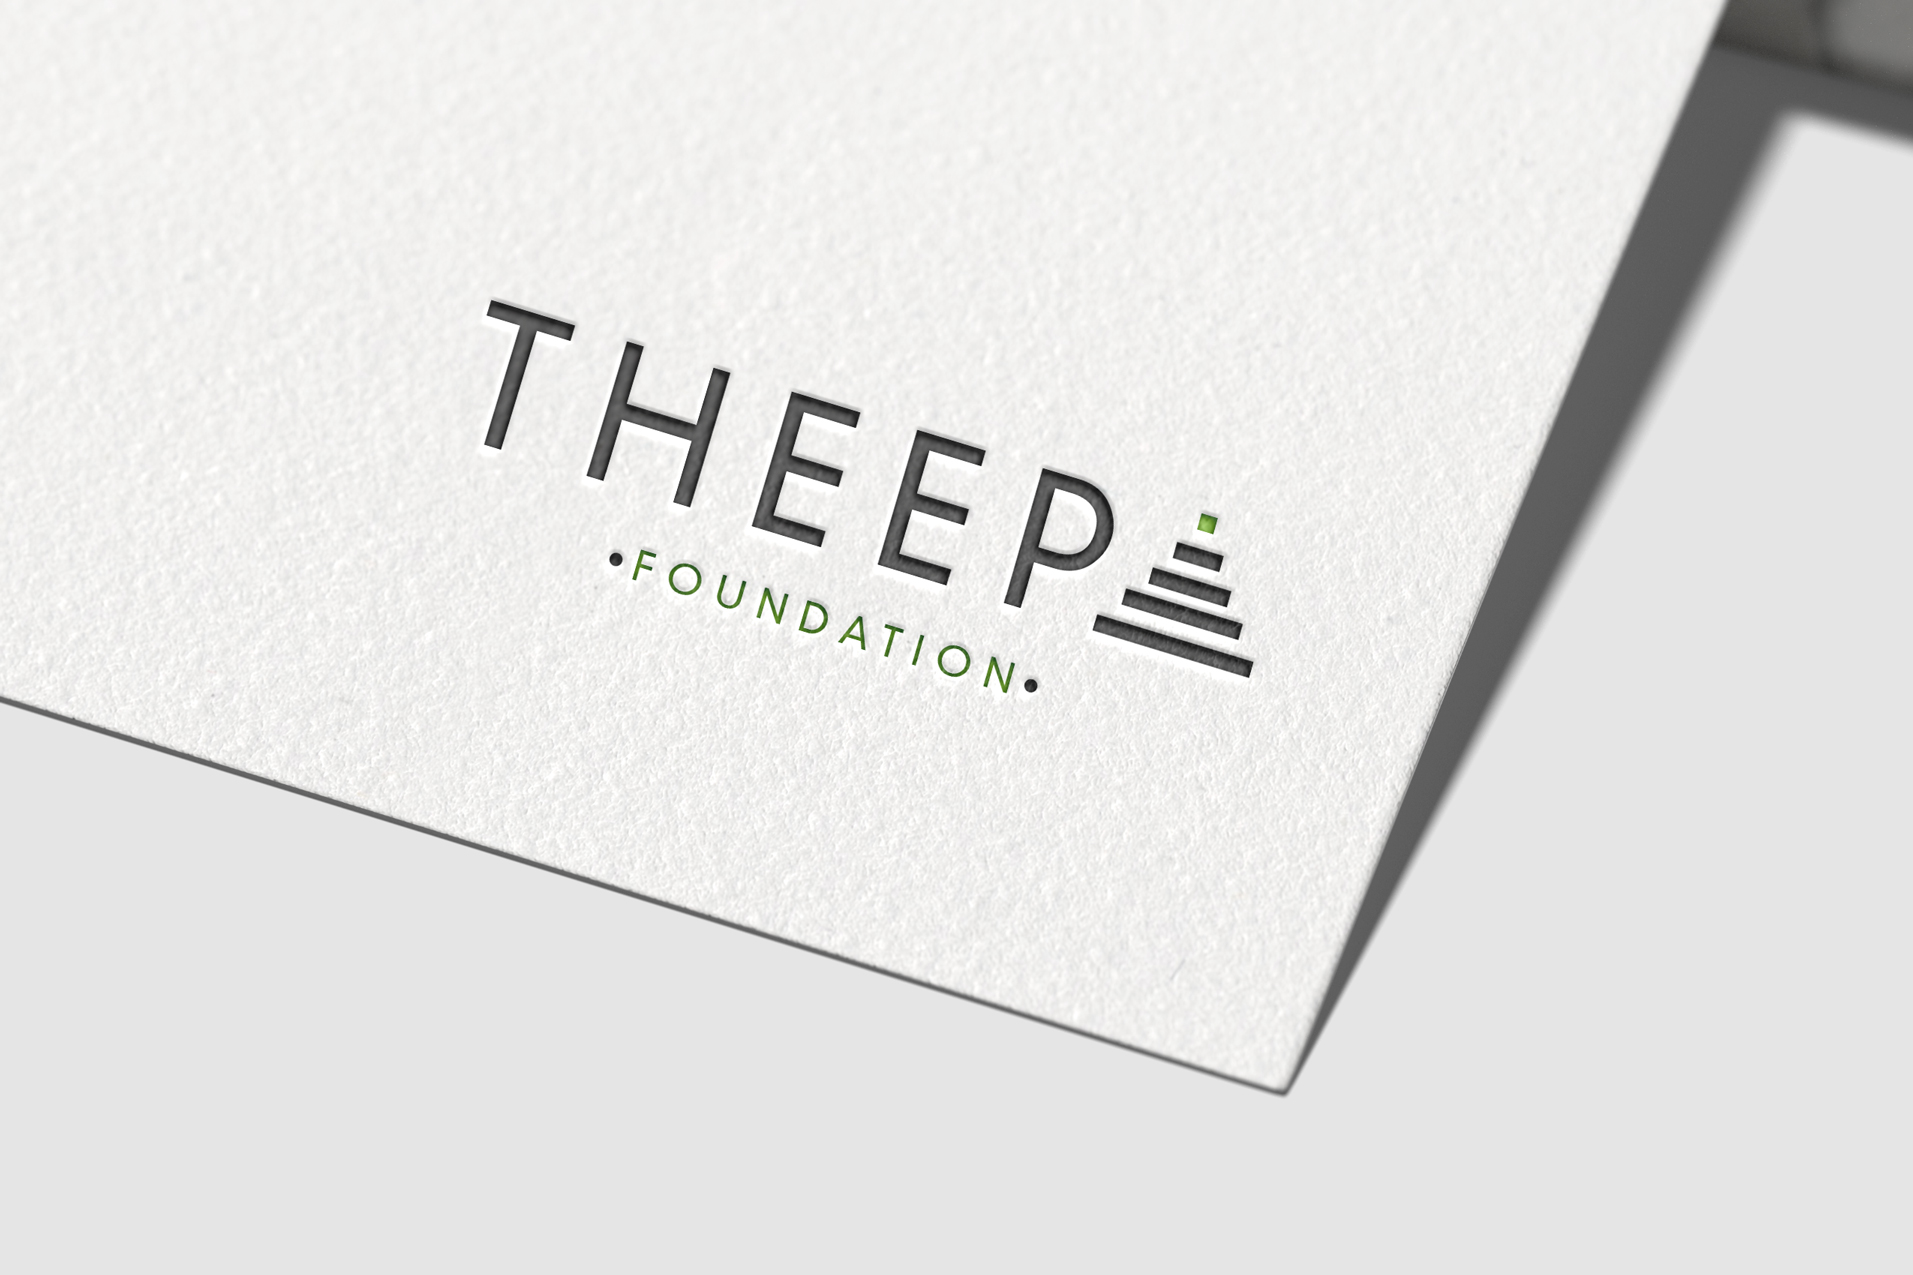 Theepa-Foundation-Logo-on-pape